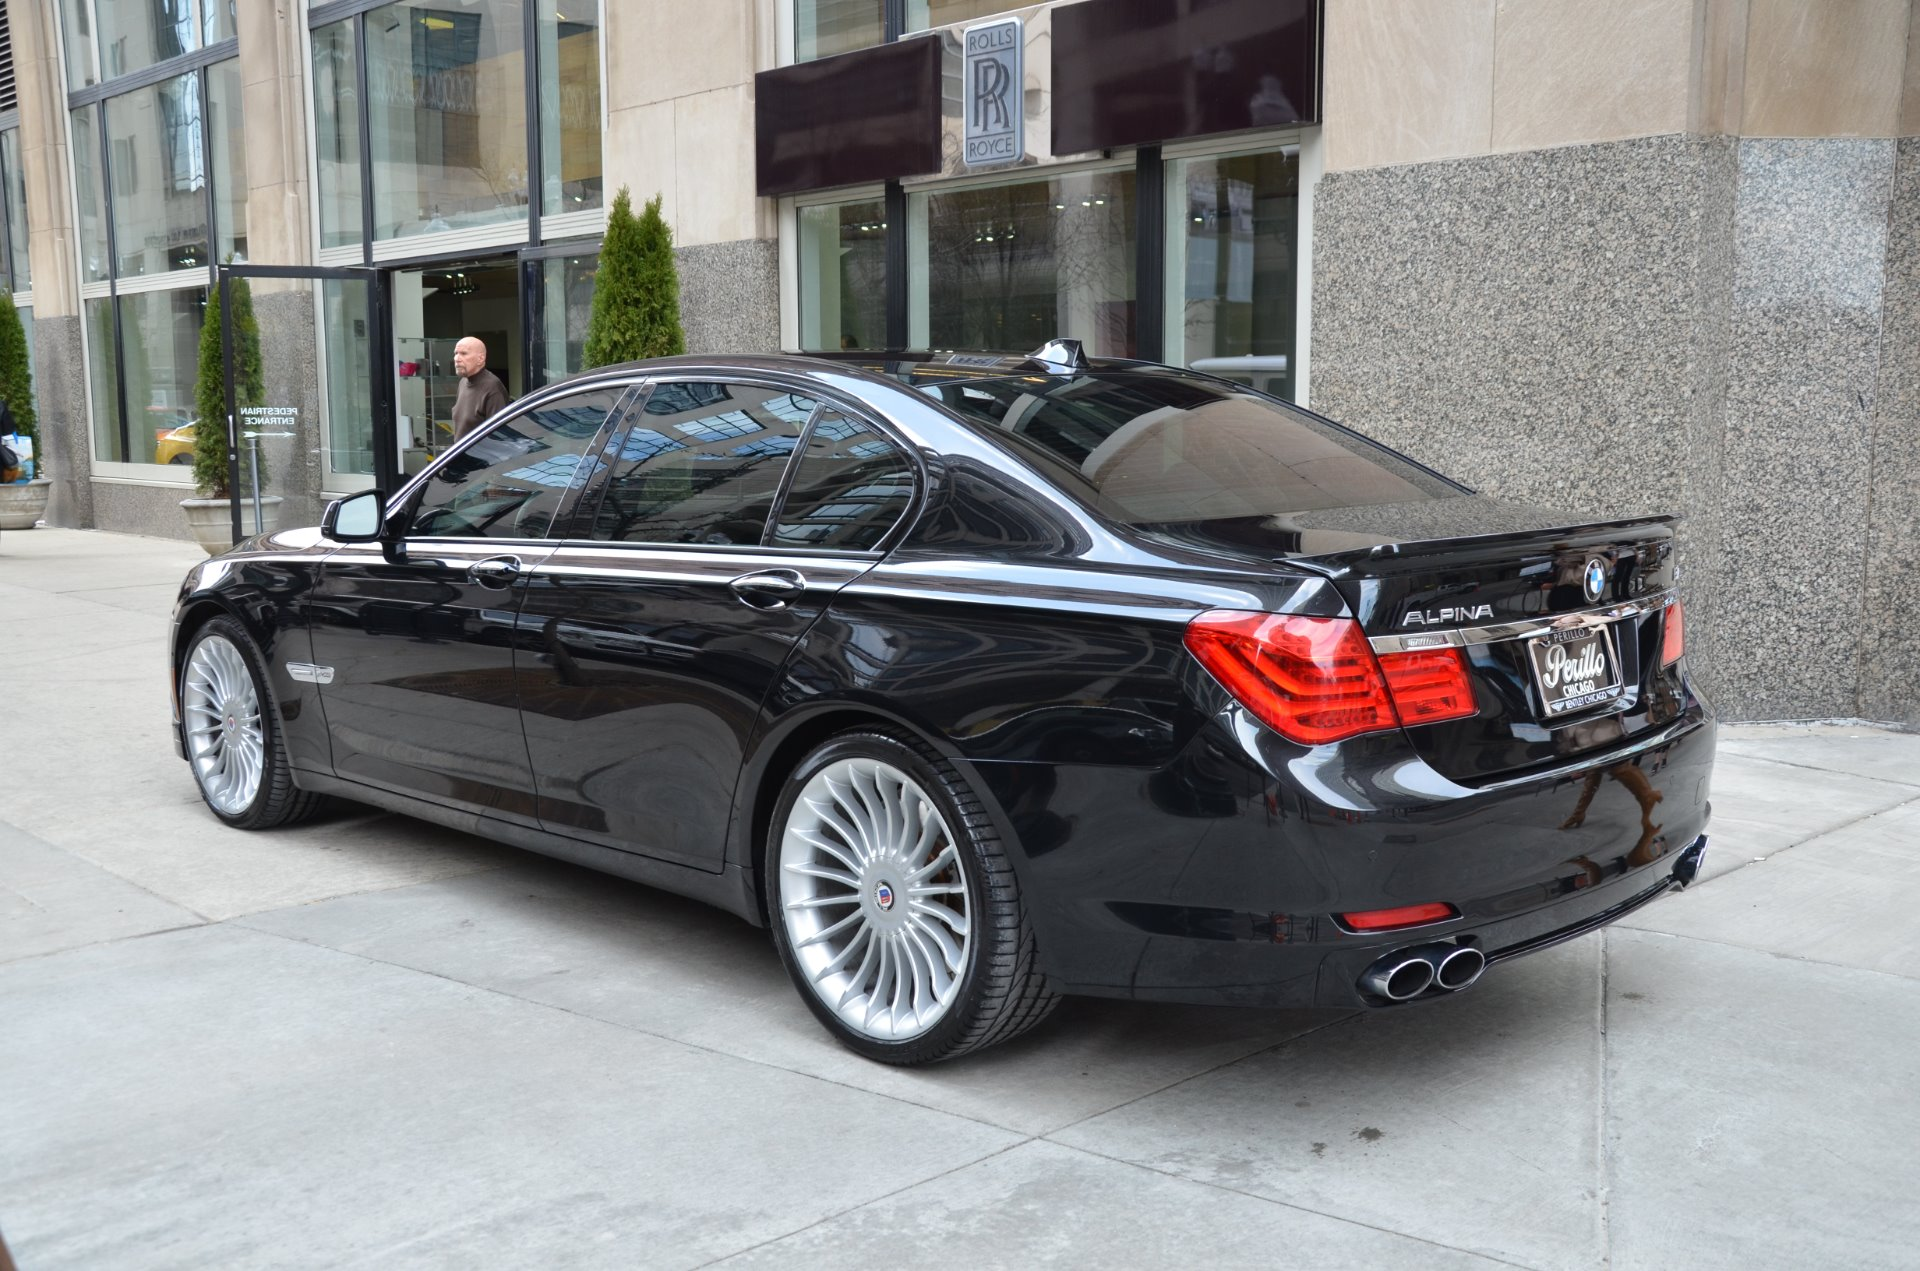 Used 2012 bmw 7 series alpina b7 swb xdrive chicago il